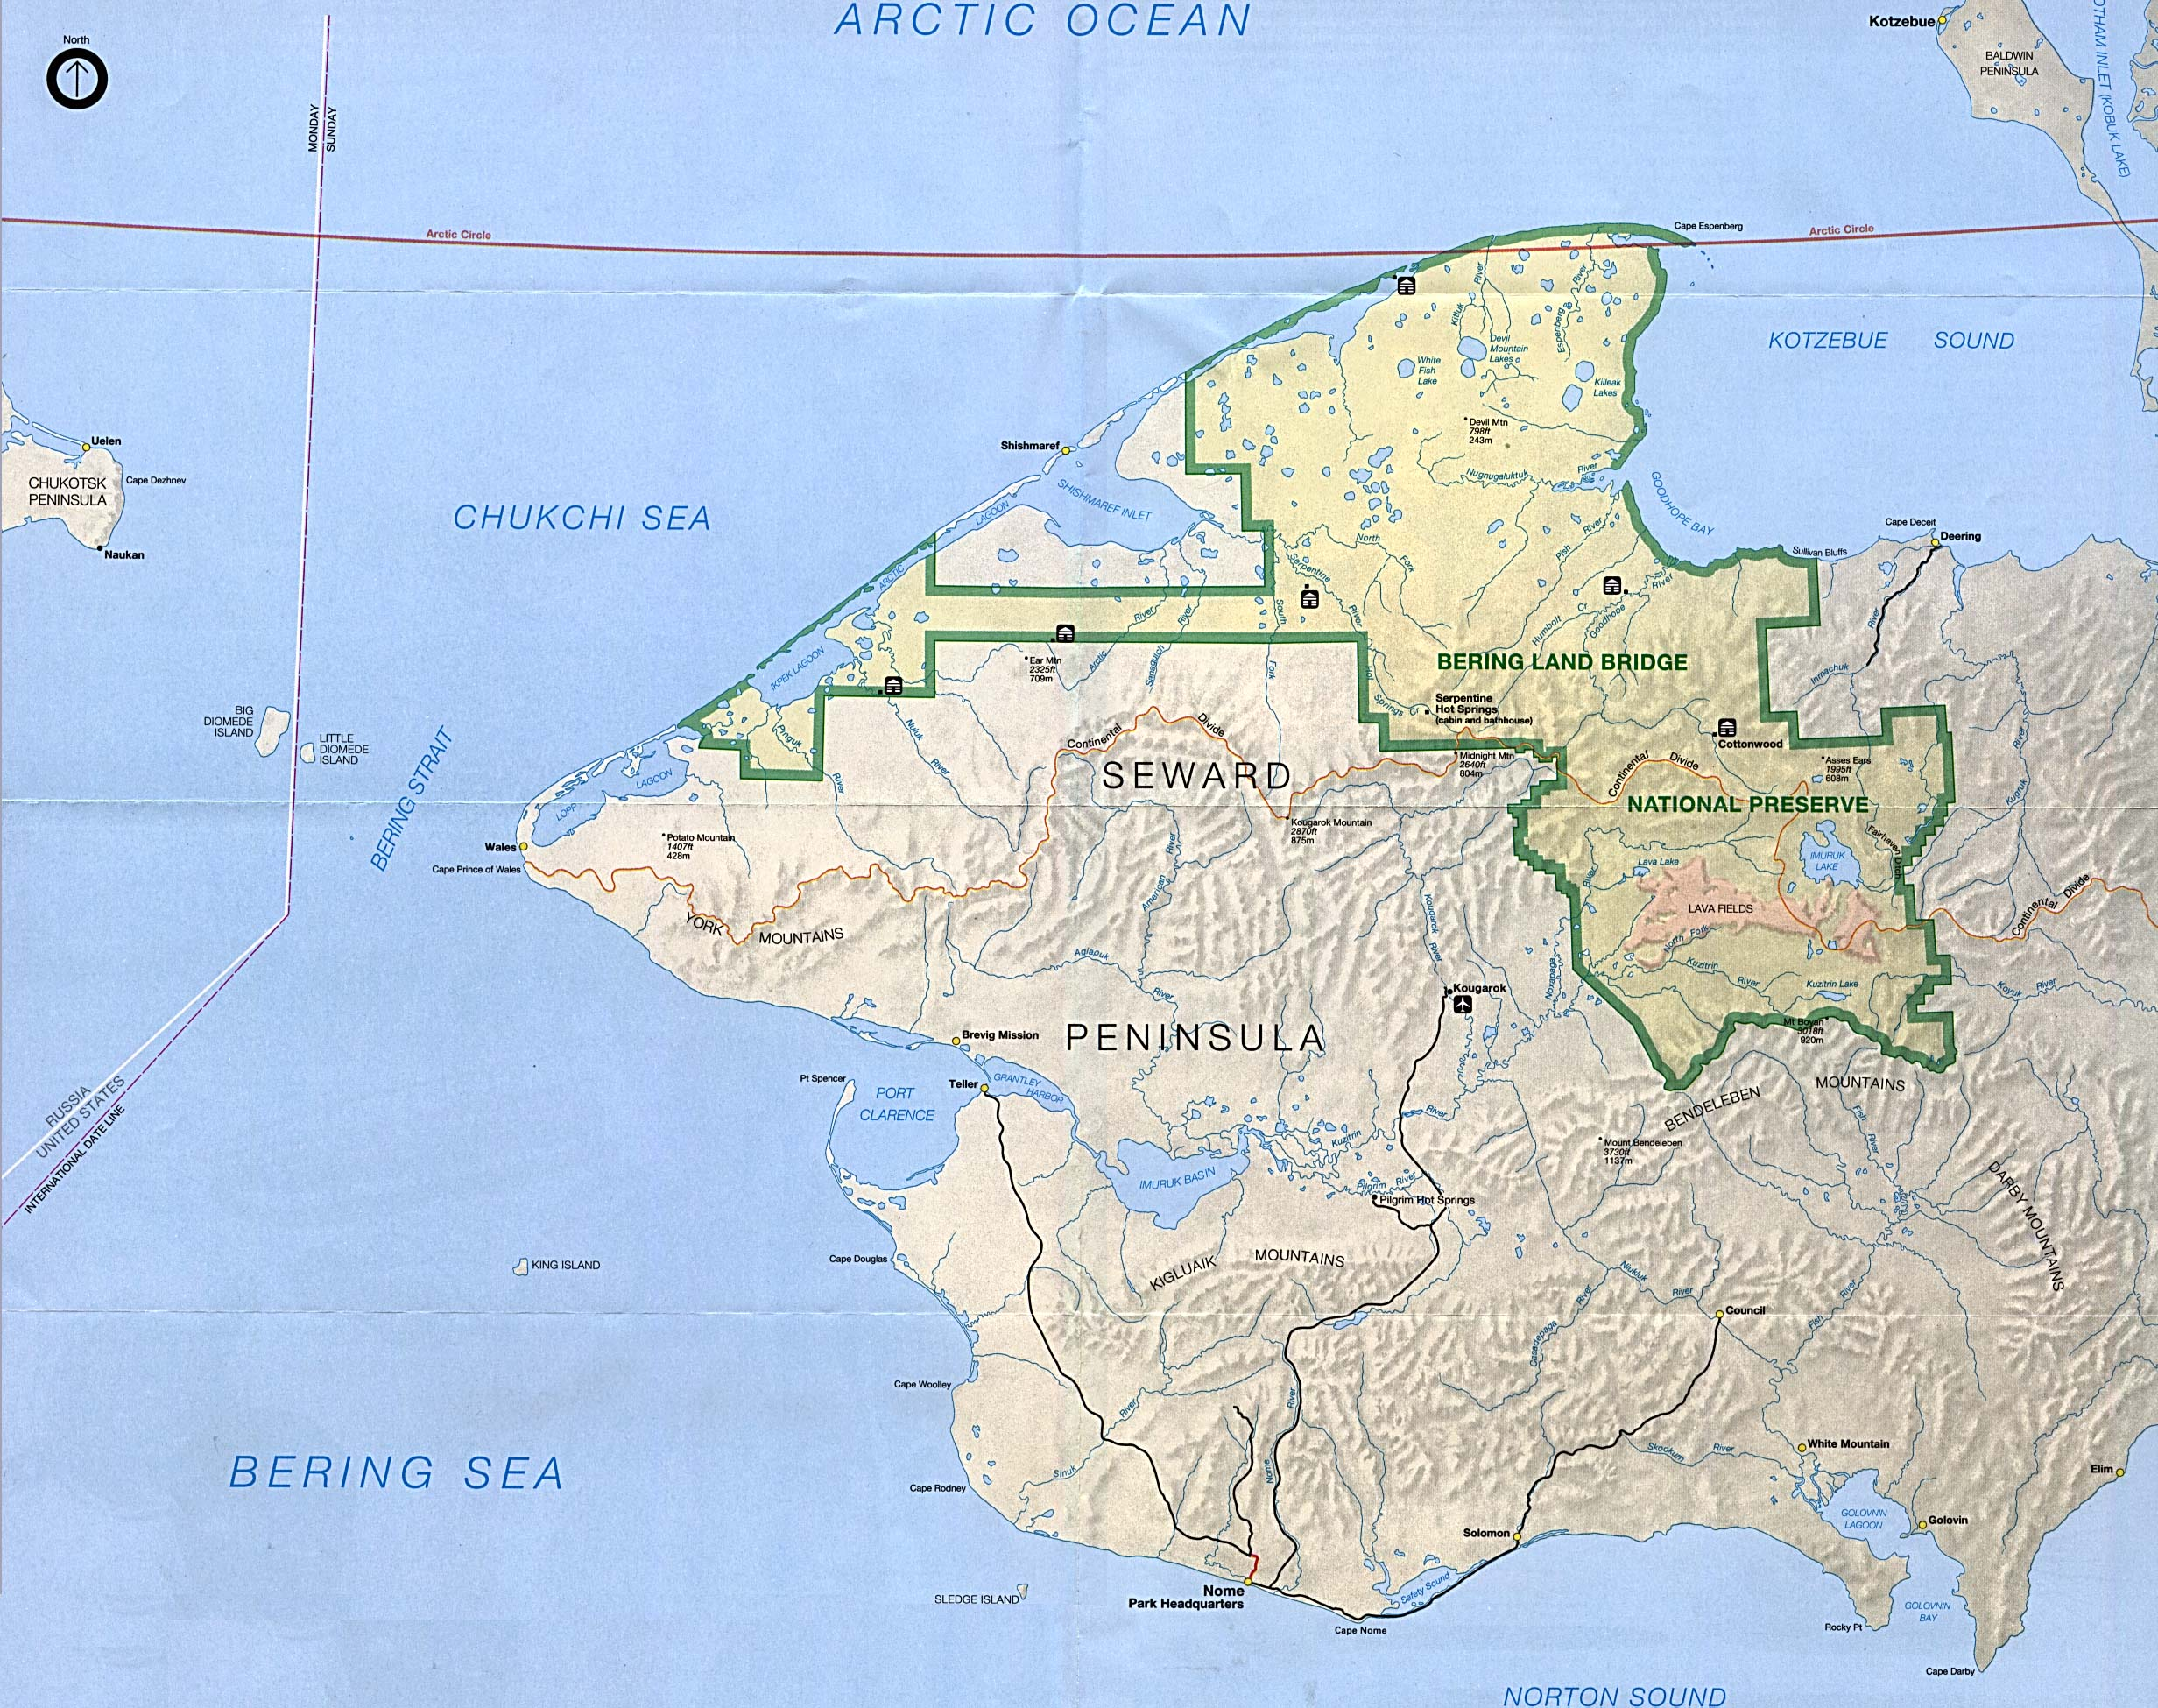 Park Map of Bering Land Bridge National Preserve, Alaska, United States